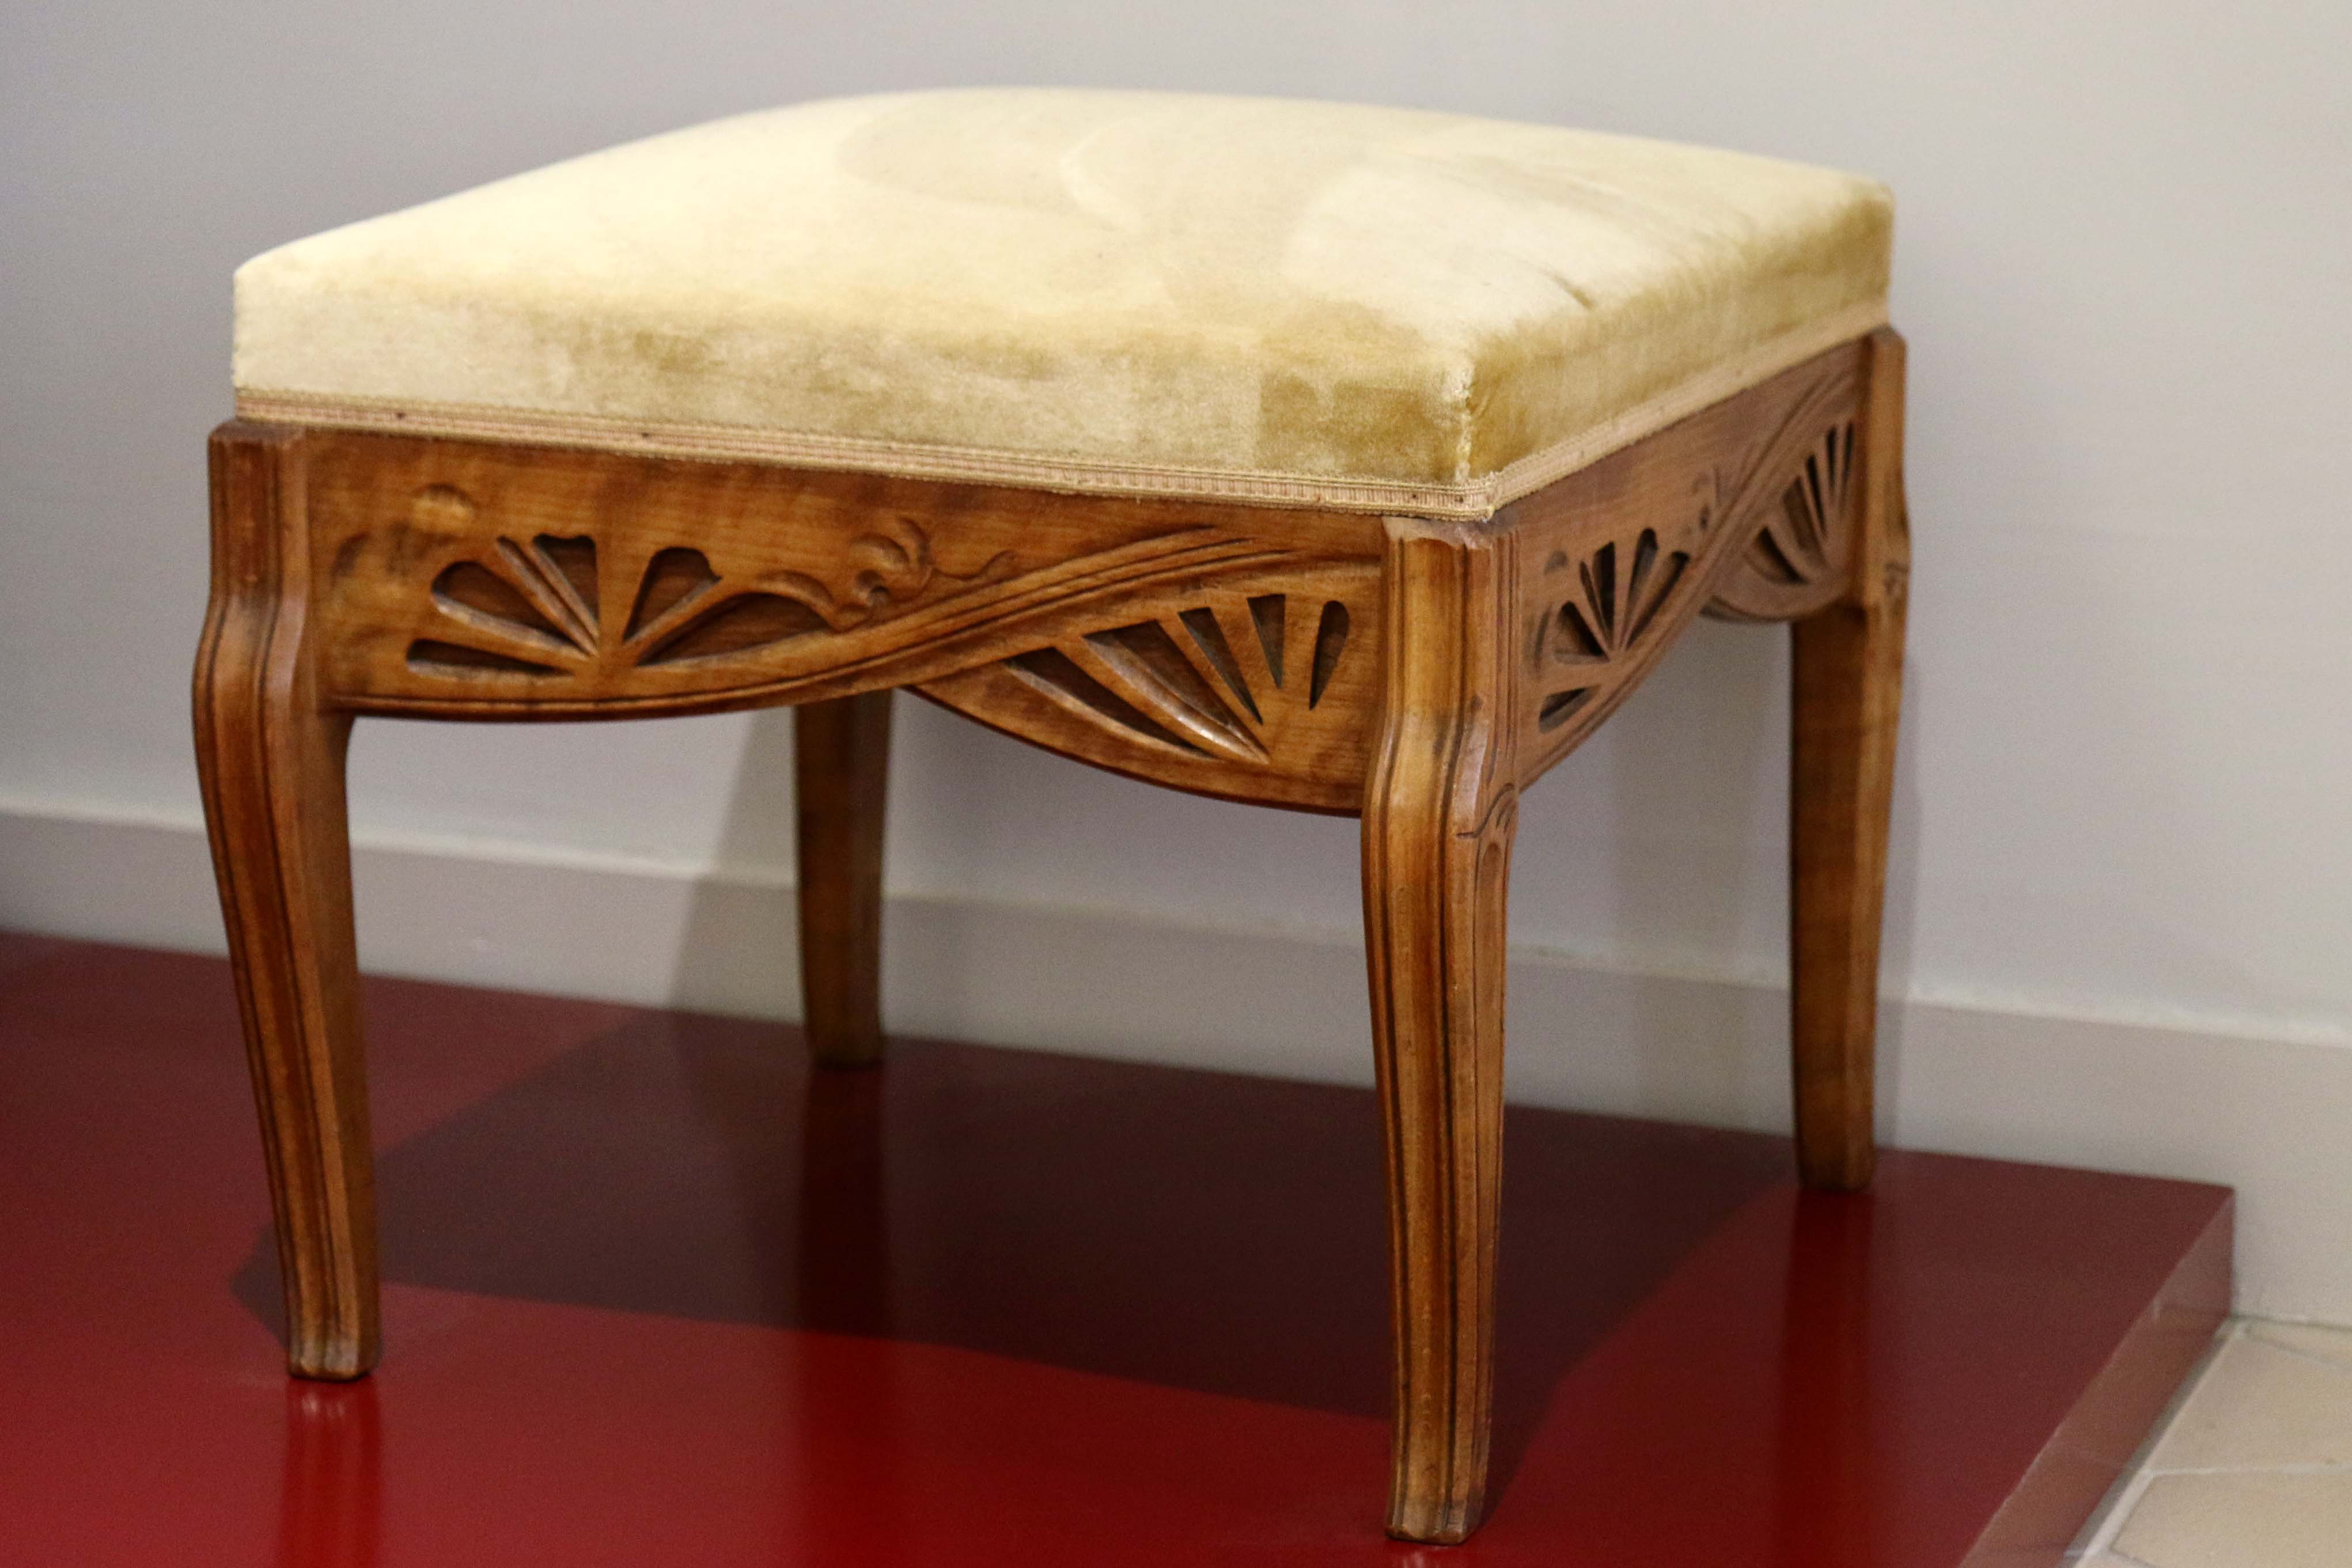 File Bor Ly Art Nouveau Gall Tabouret Jpg Wikimedia Commons